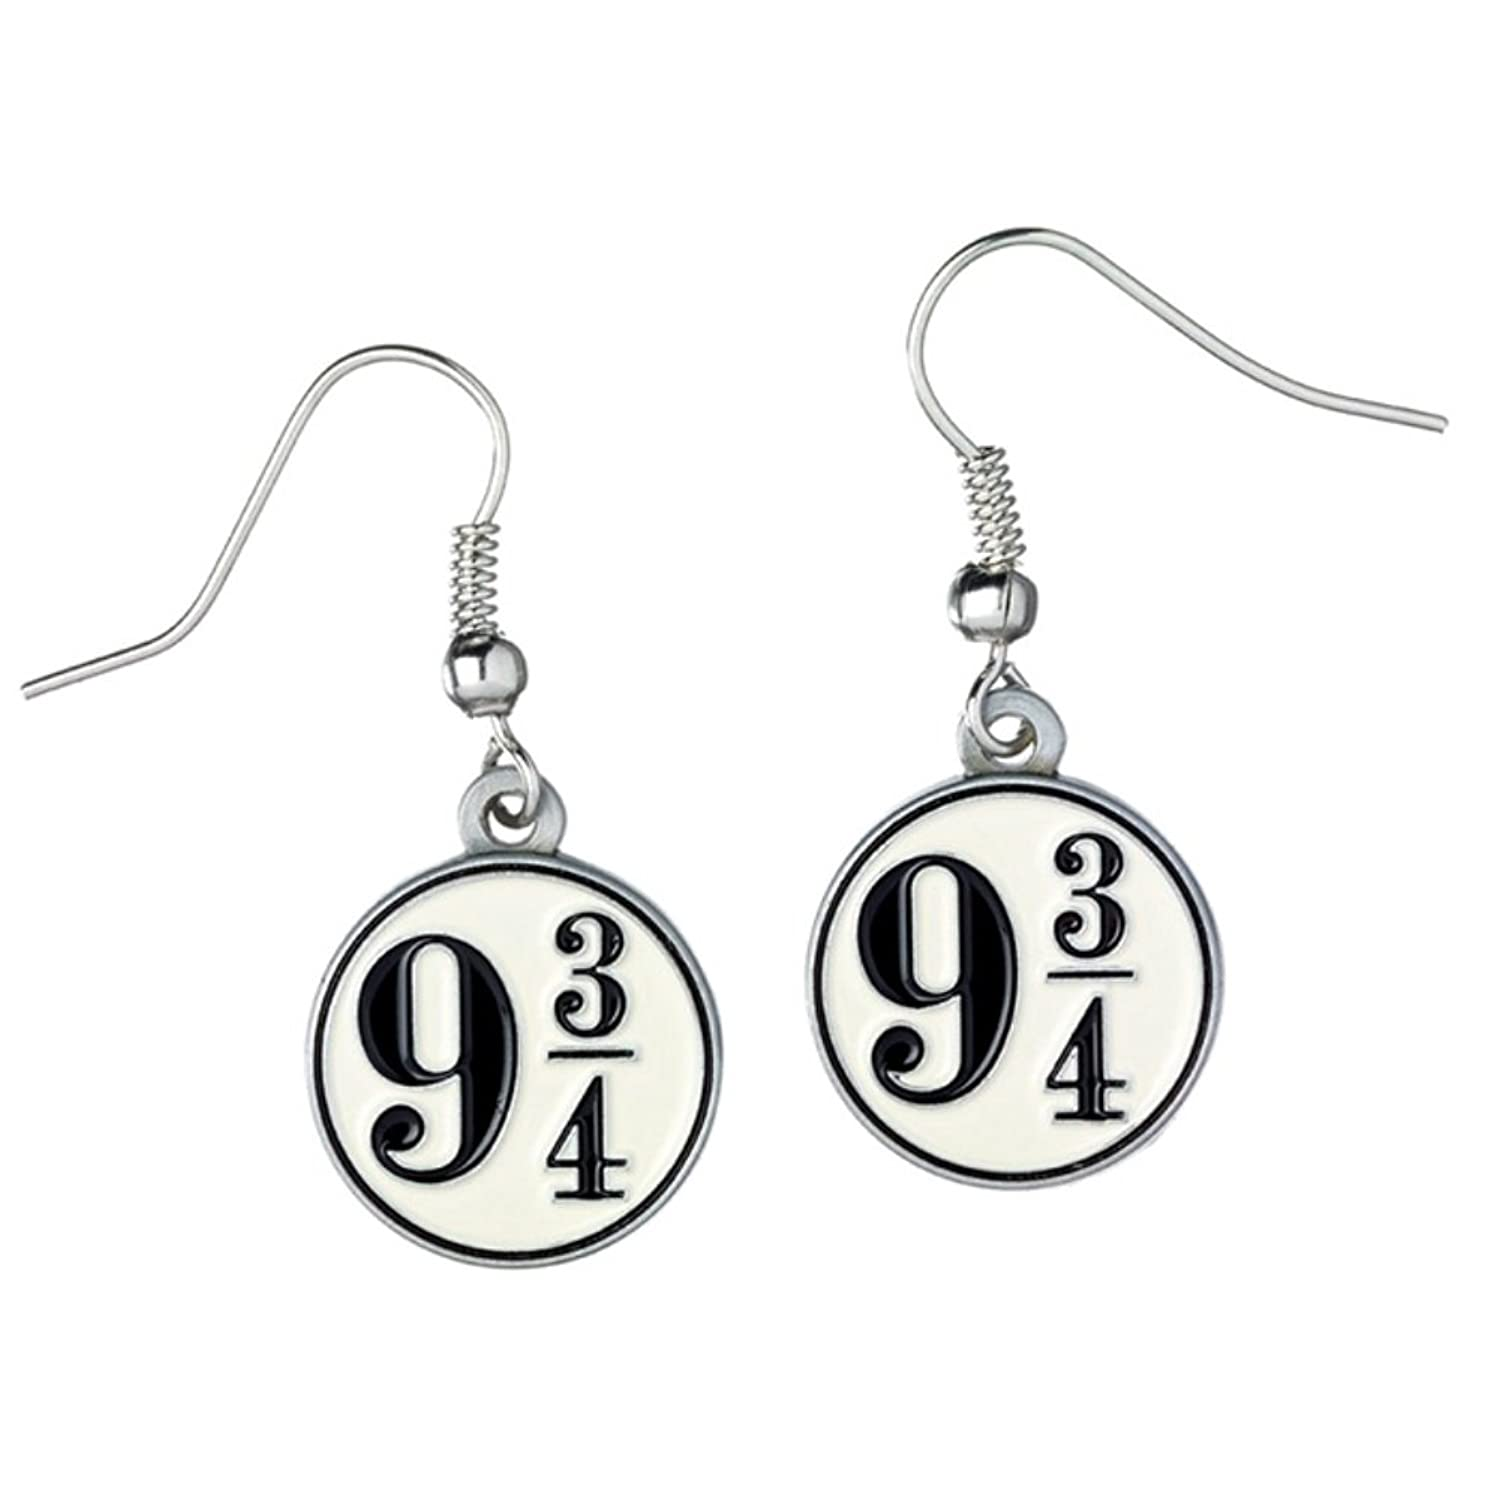 Official Harry Potter Jewellery Platform 9 3/4 Earrings R0Q9GdGn6